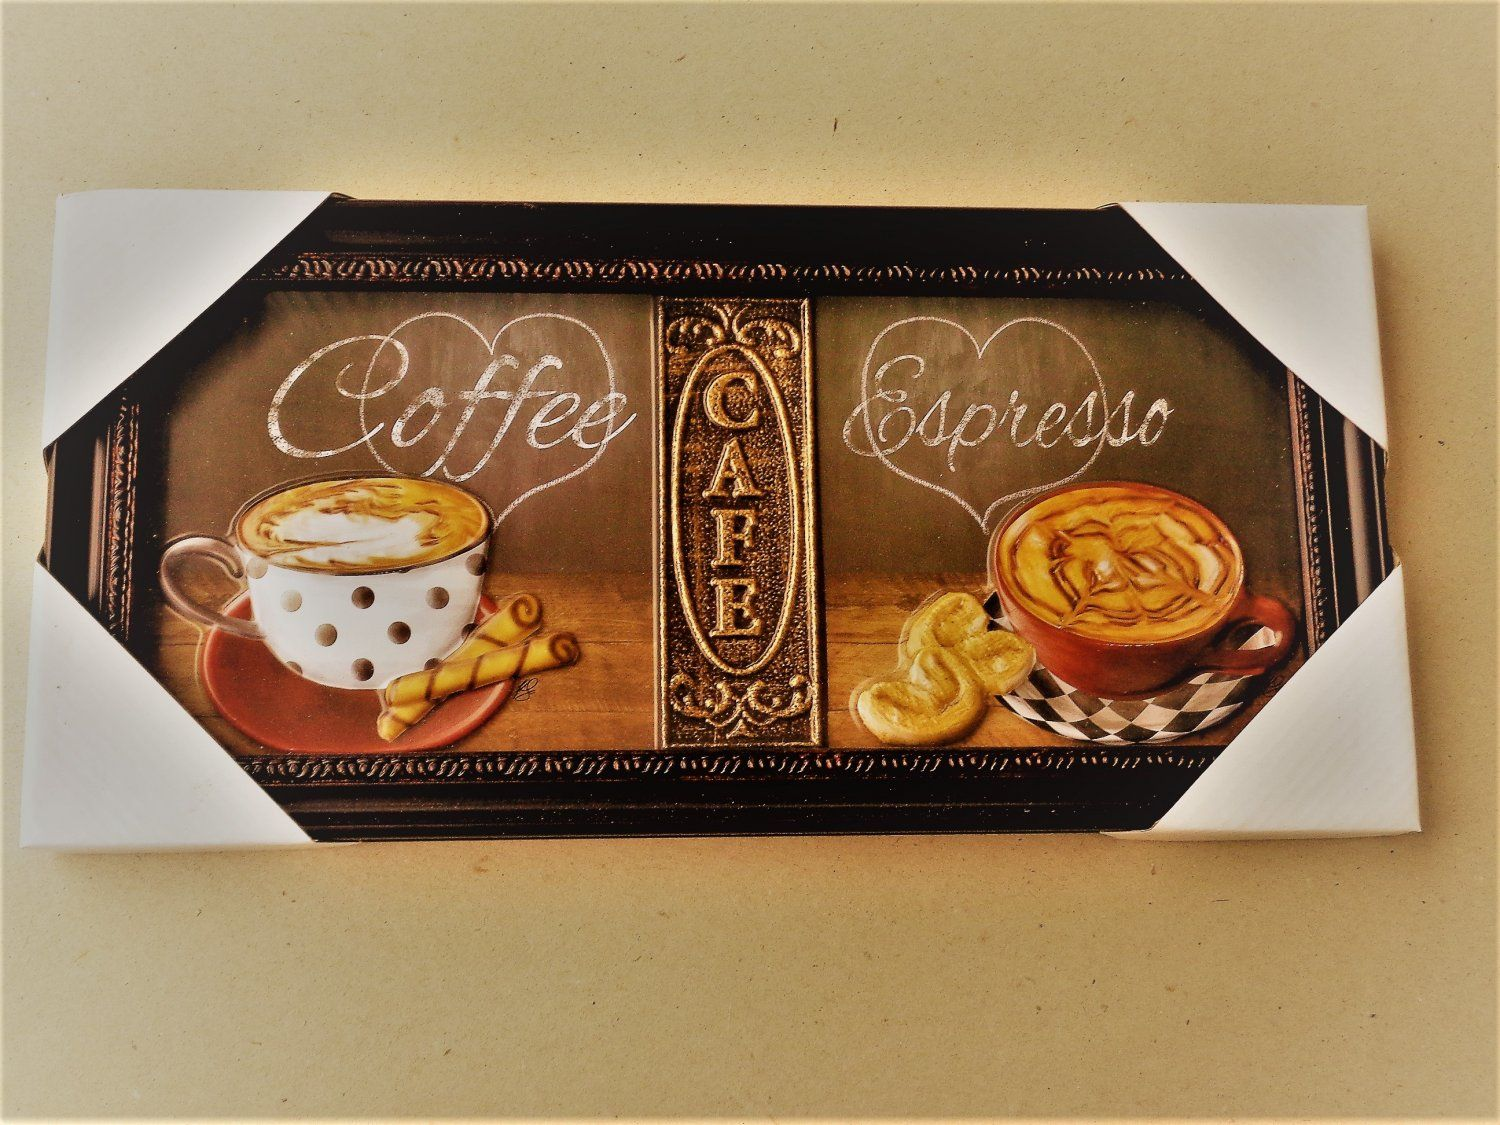 Coffee Decor For Kitchen Cabinets Lowes 43cups 43espresso 43cafe 43kitchen 43wall 43decor Grace The